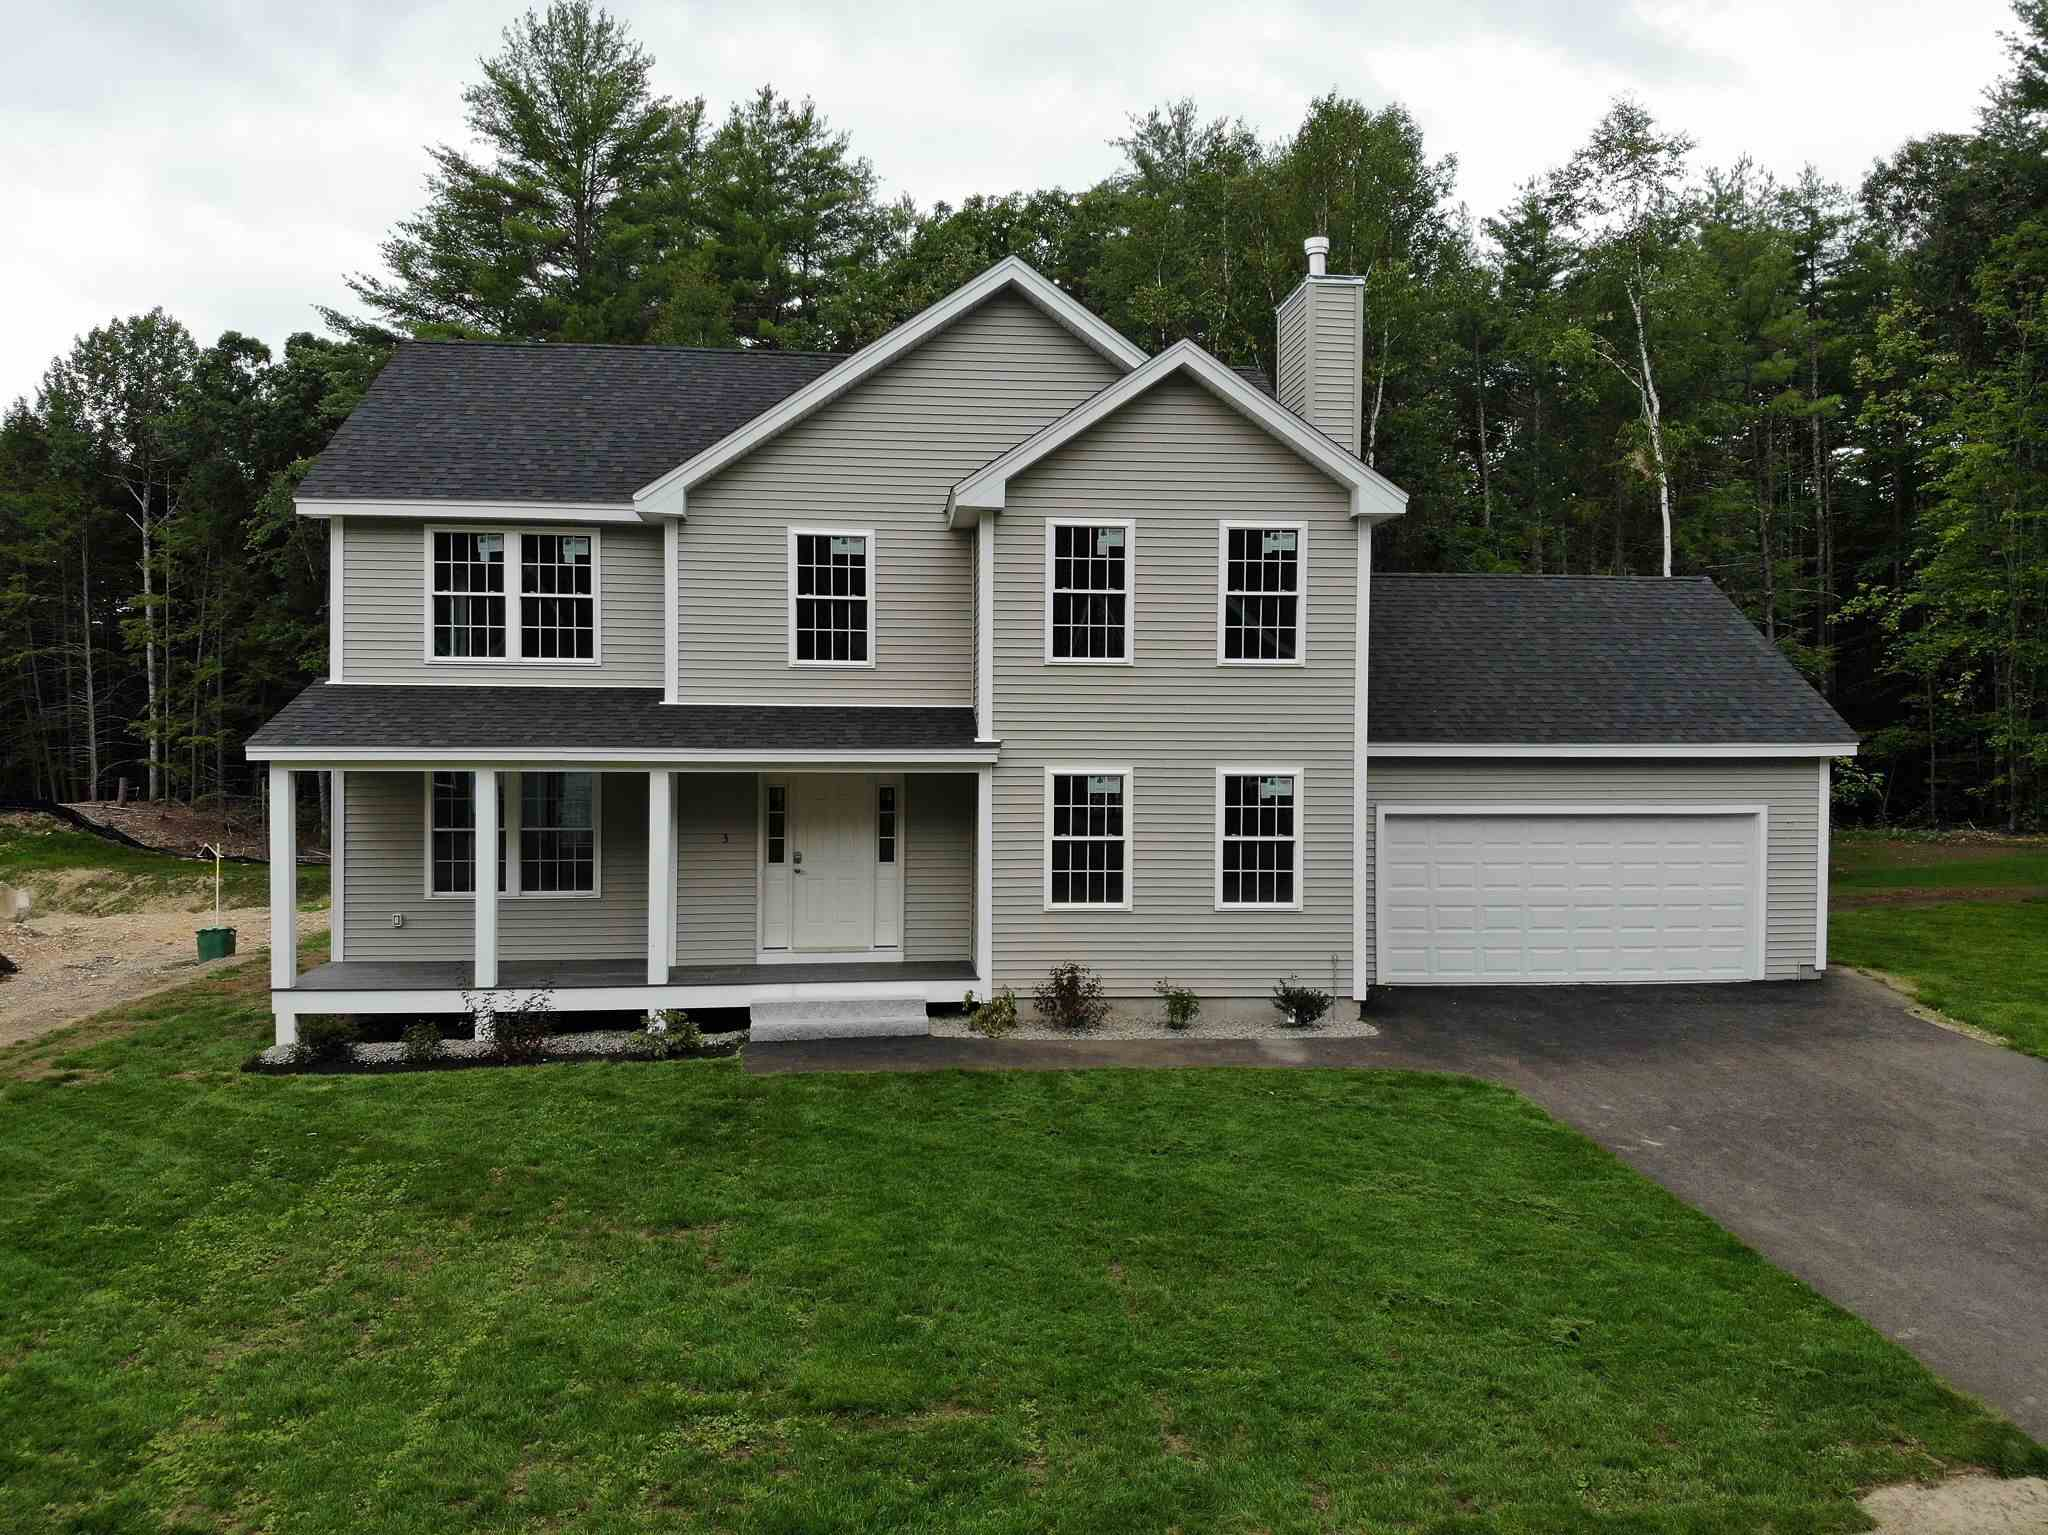 MLS 4829593: 3 Dorothy Drive-Unit Lot 2, Amherst NH